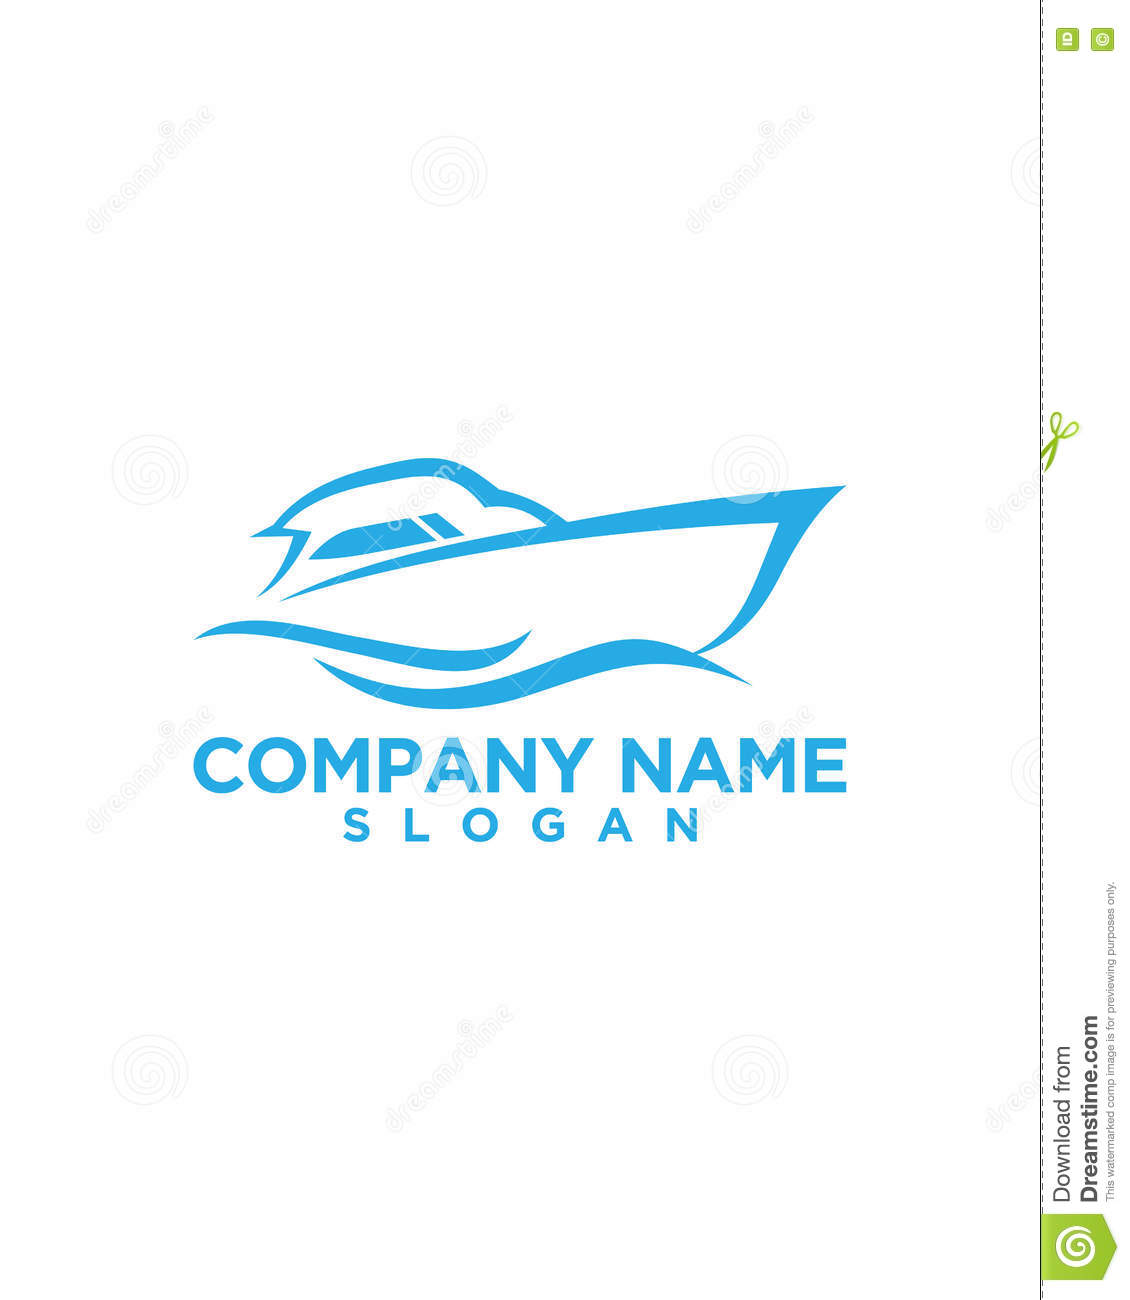 Boat rent logo design 4